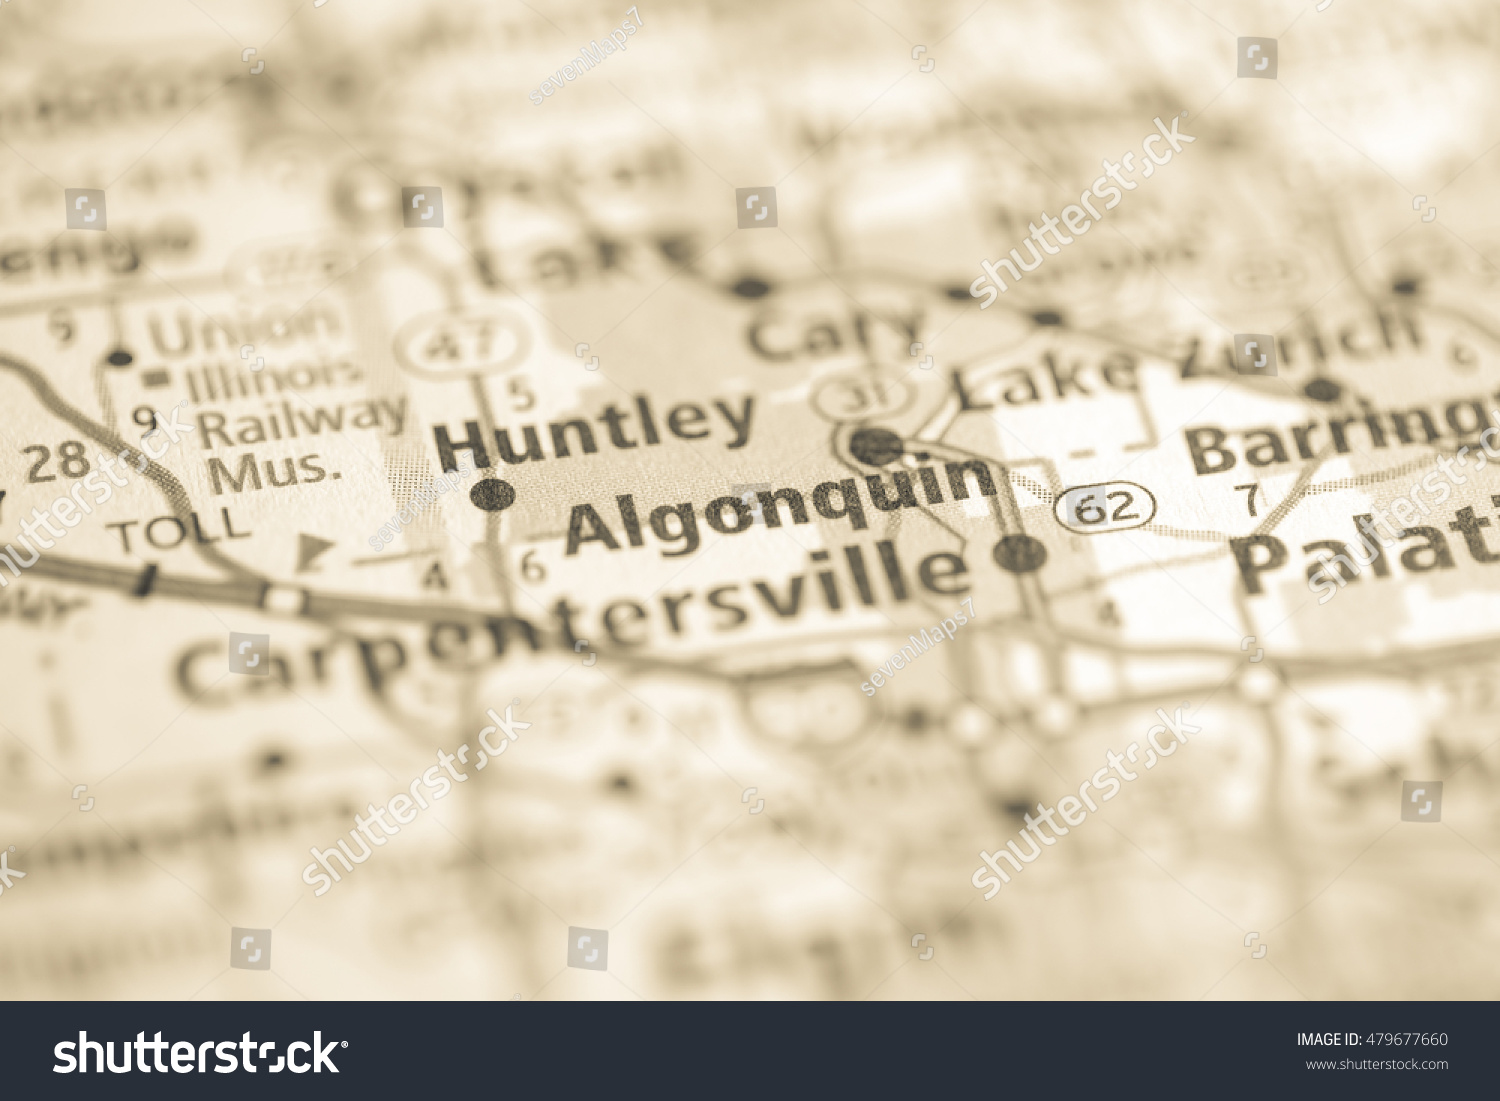 Algonquin Illinois Usa Stock Photo Edit Now 479677660 Shutterstock